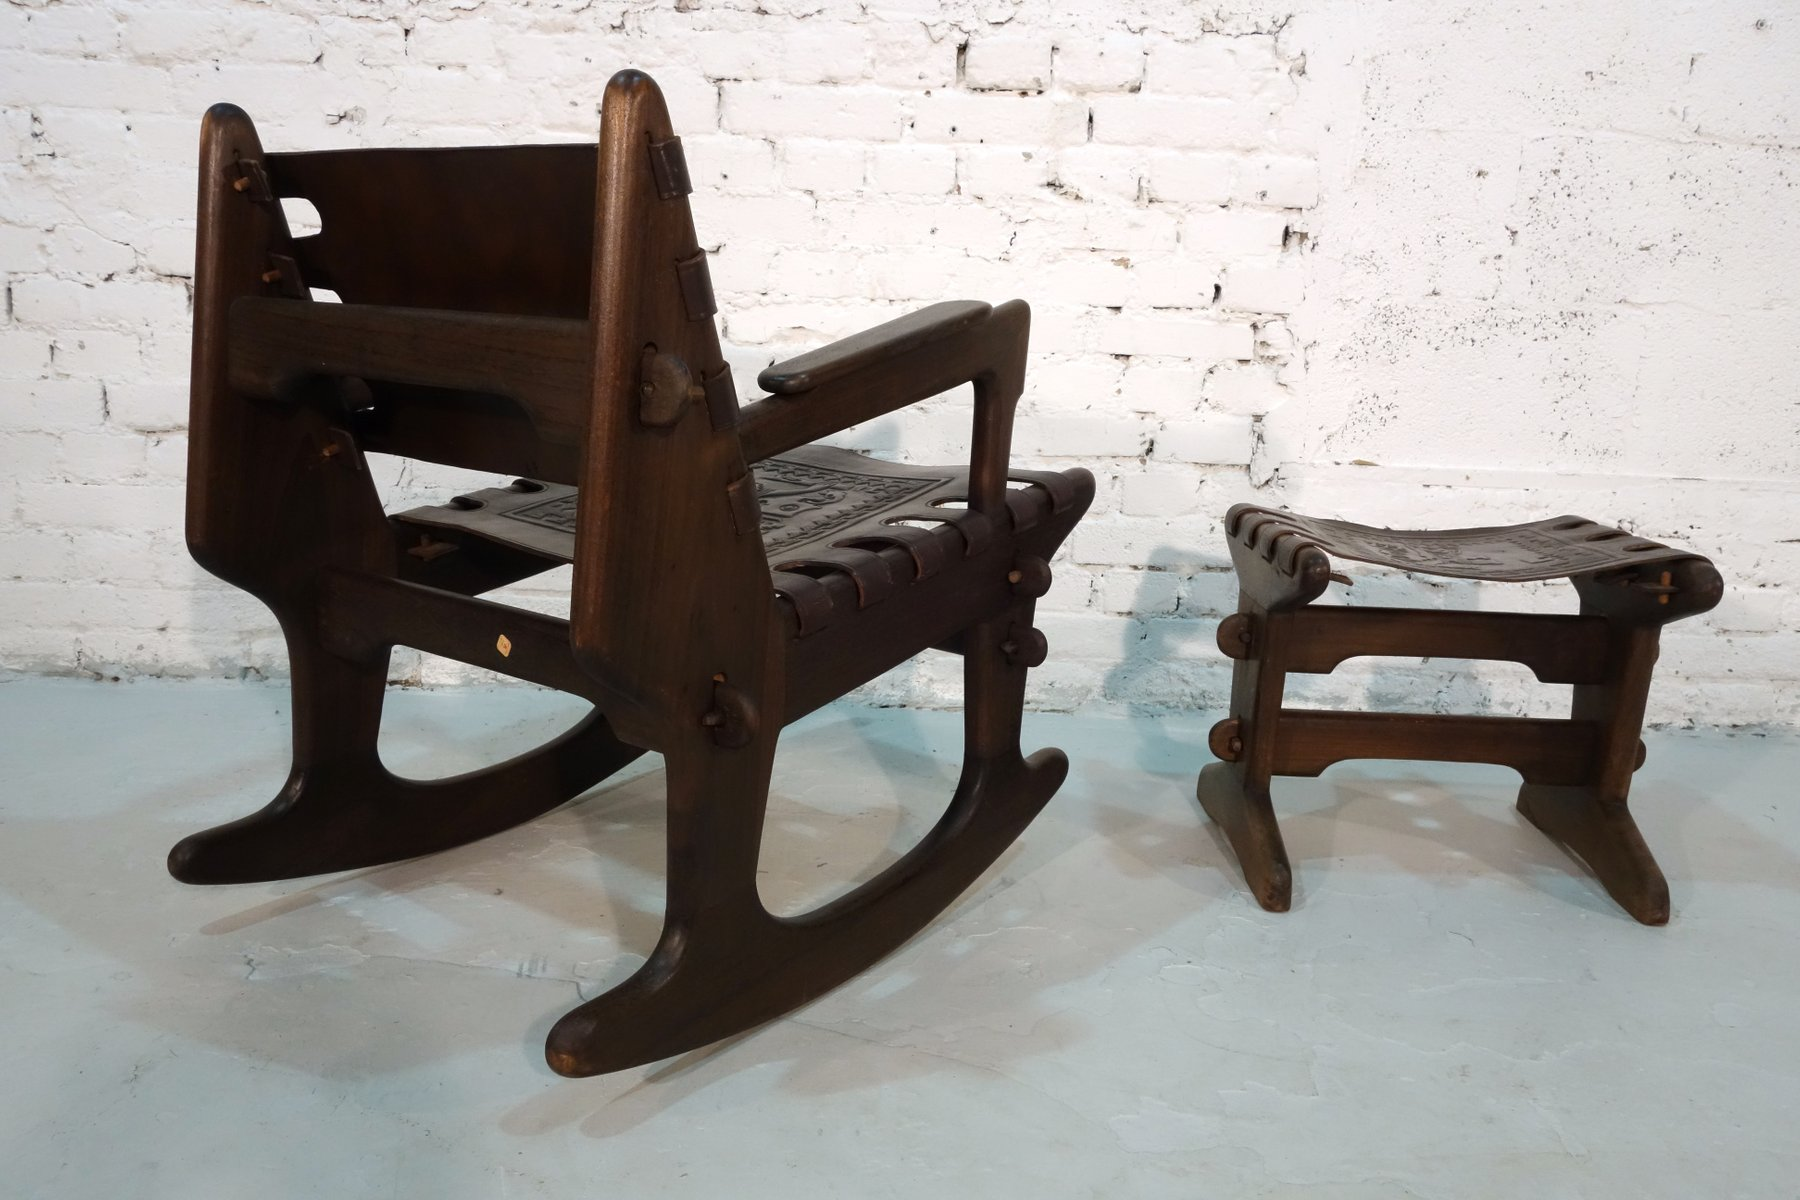 Ordinaire Rocking Chair With Footstool By Angel Pazmino For Meubles De Estilo, 1960s